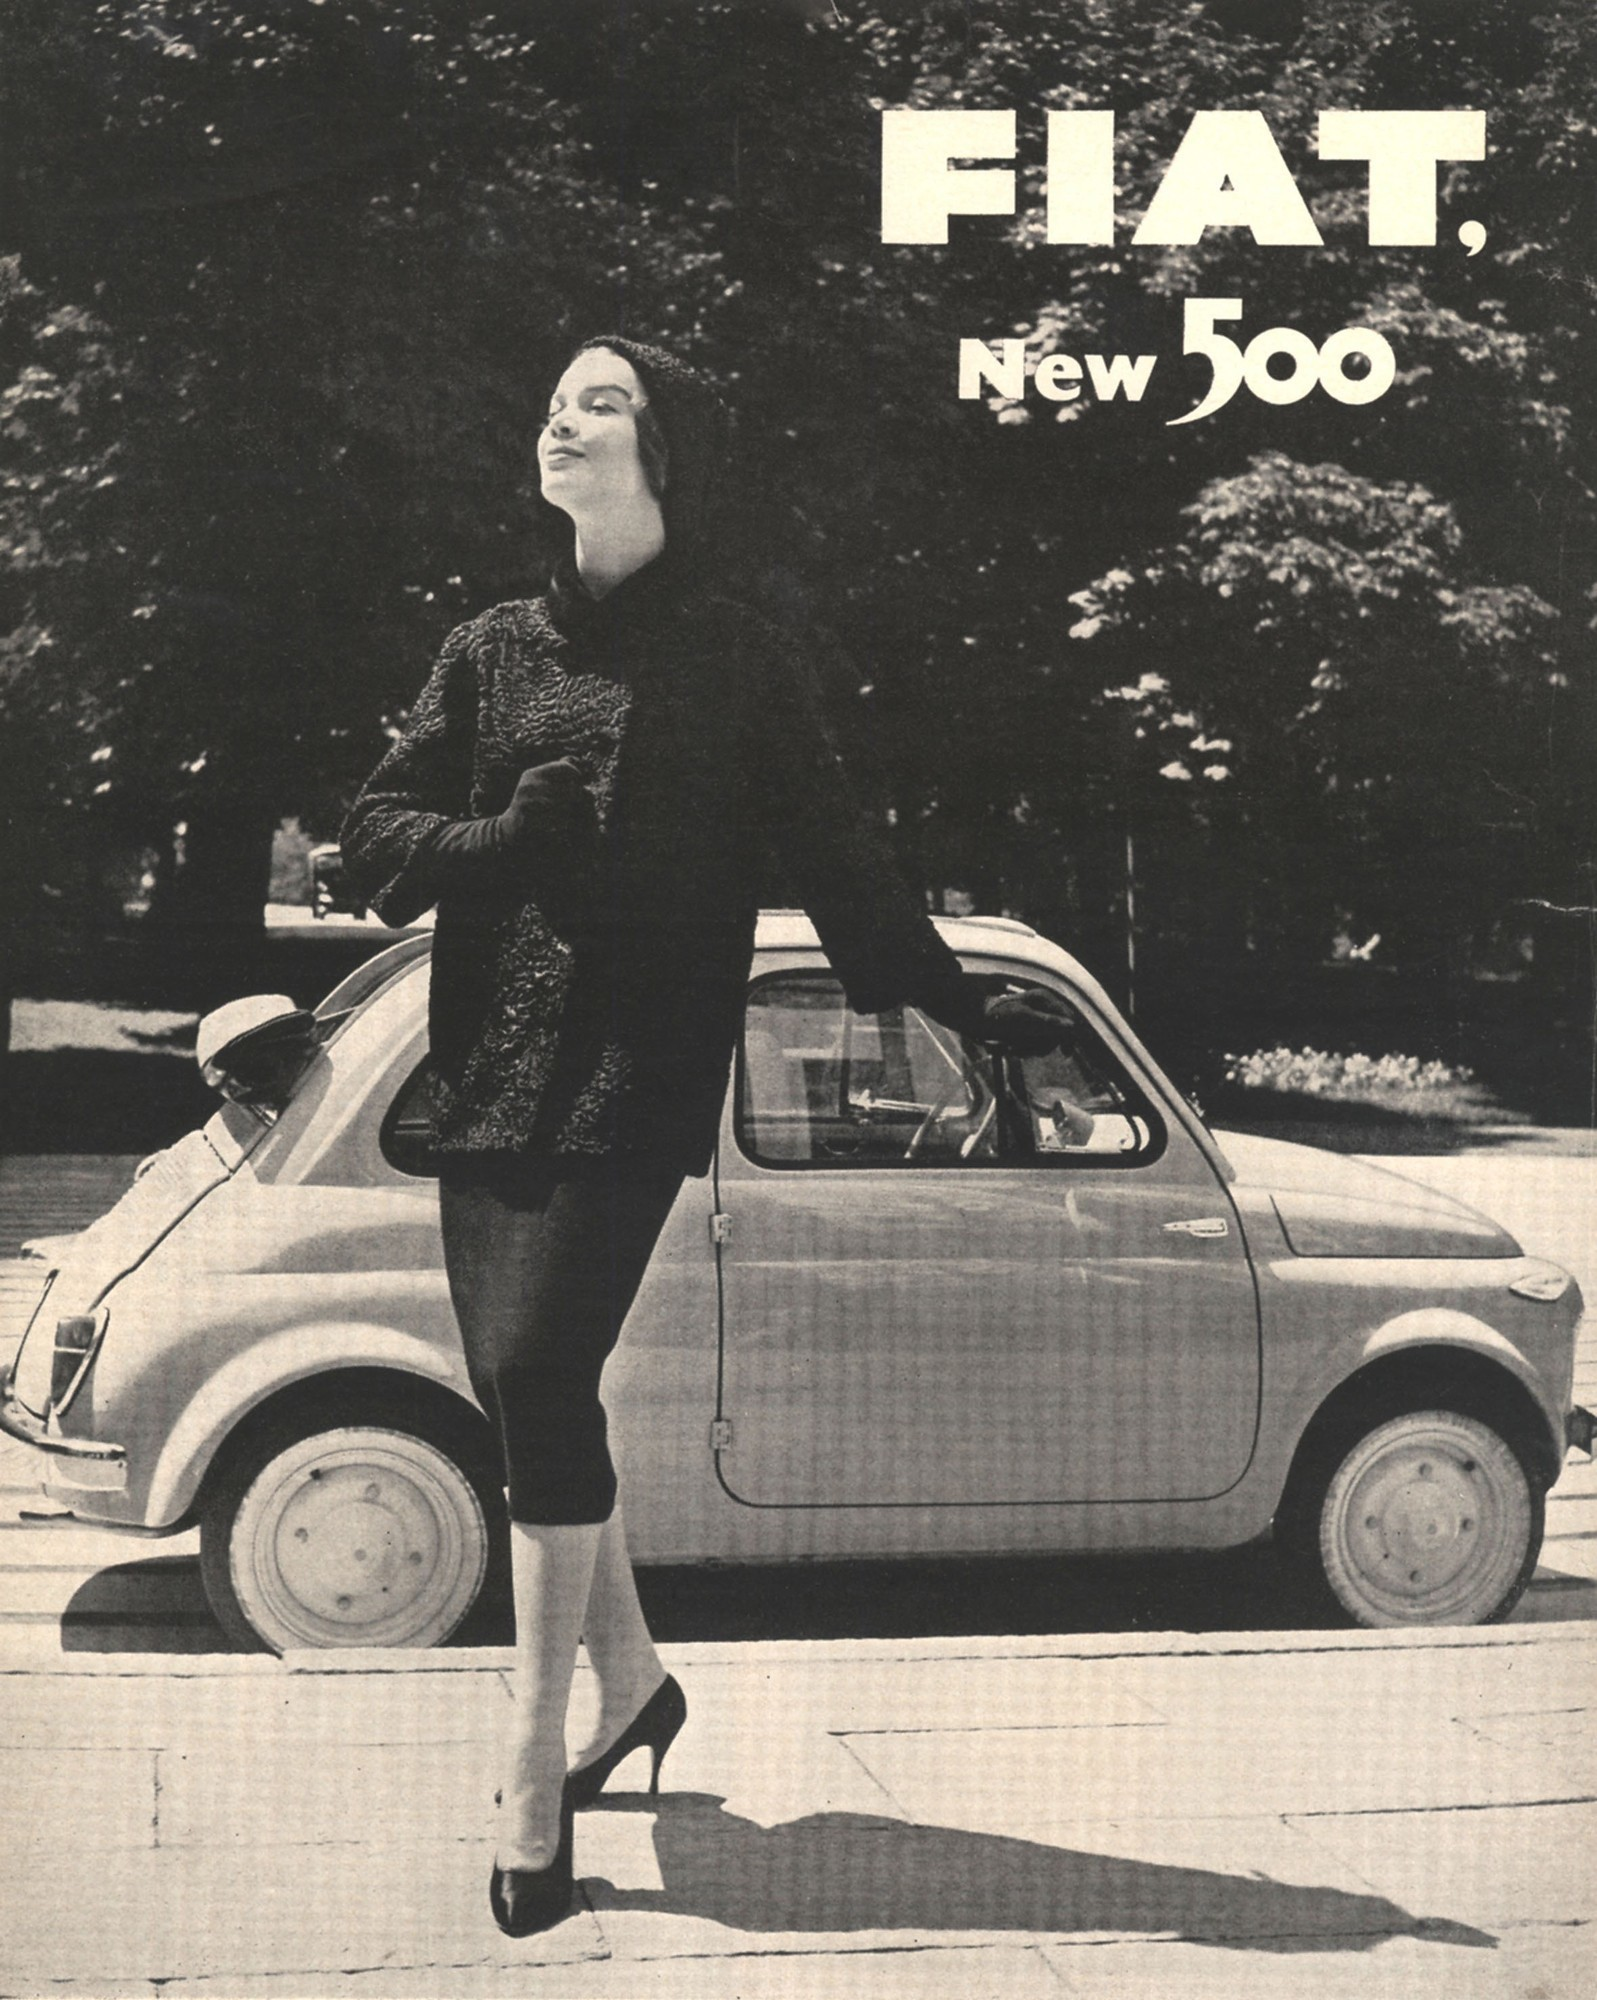 A Love Letter to the Fiat 500: The New Popemobile